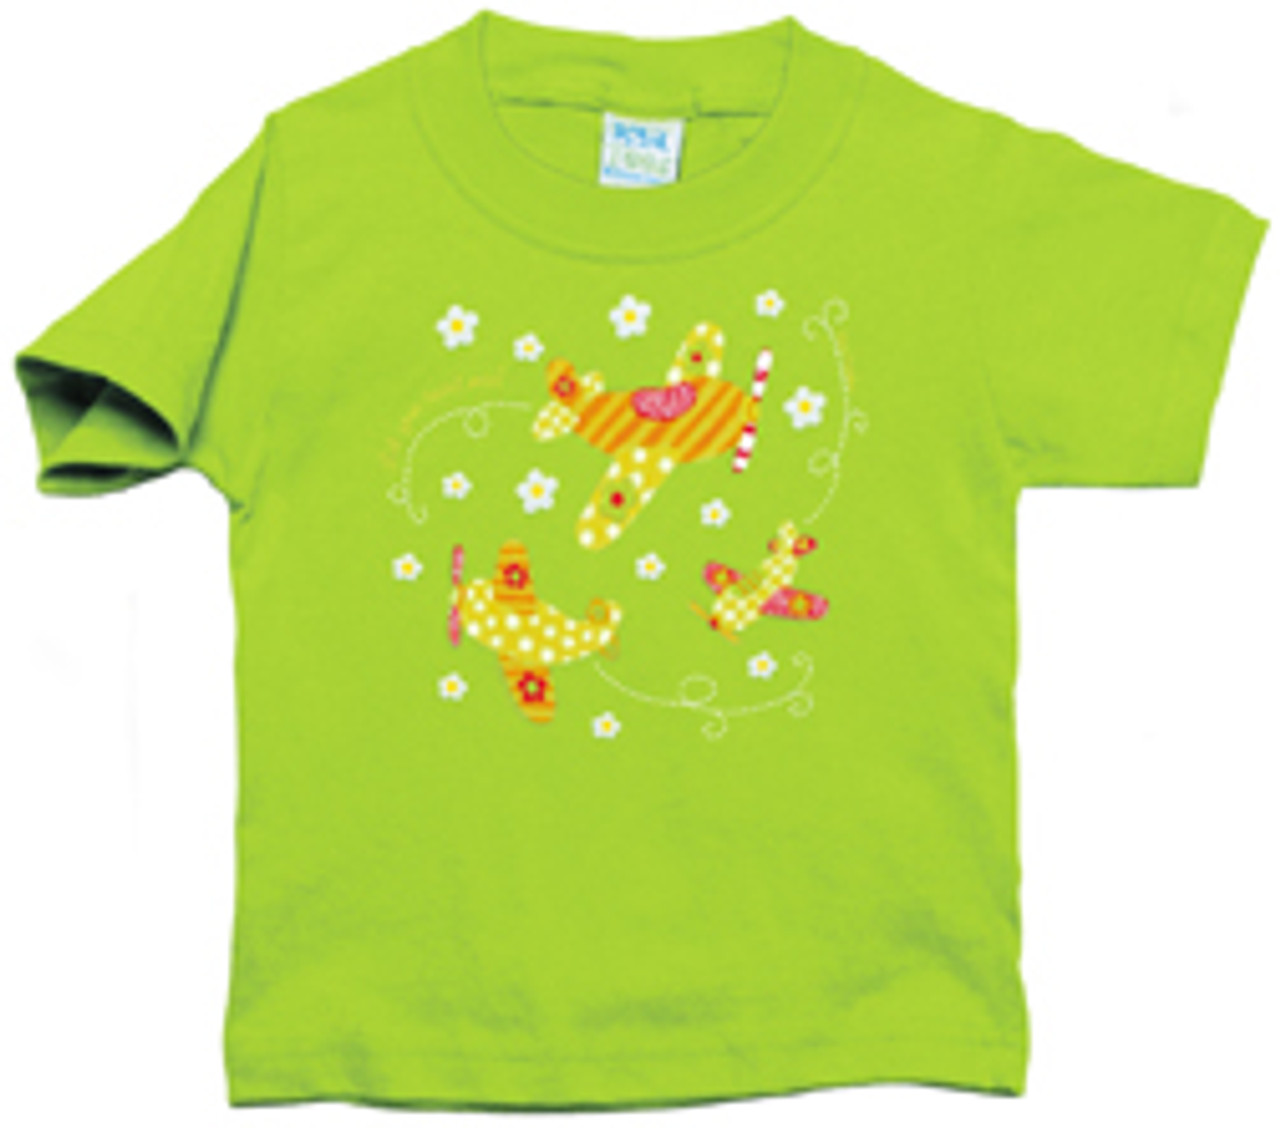 Soaring Toddler shirt